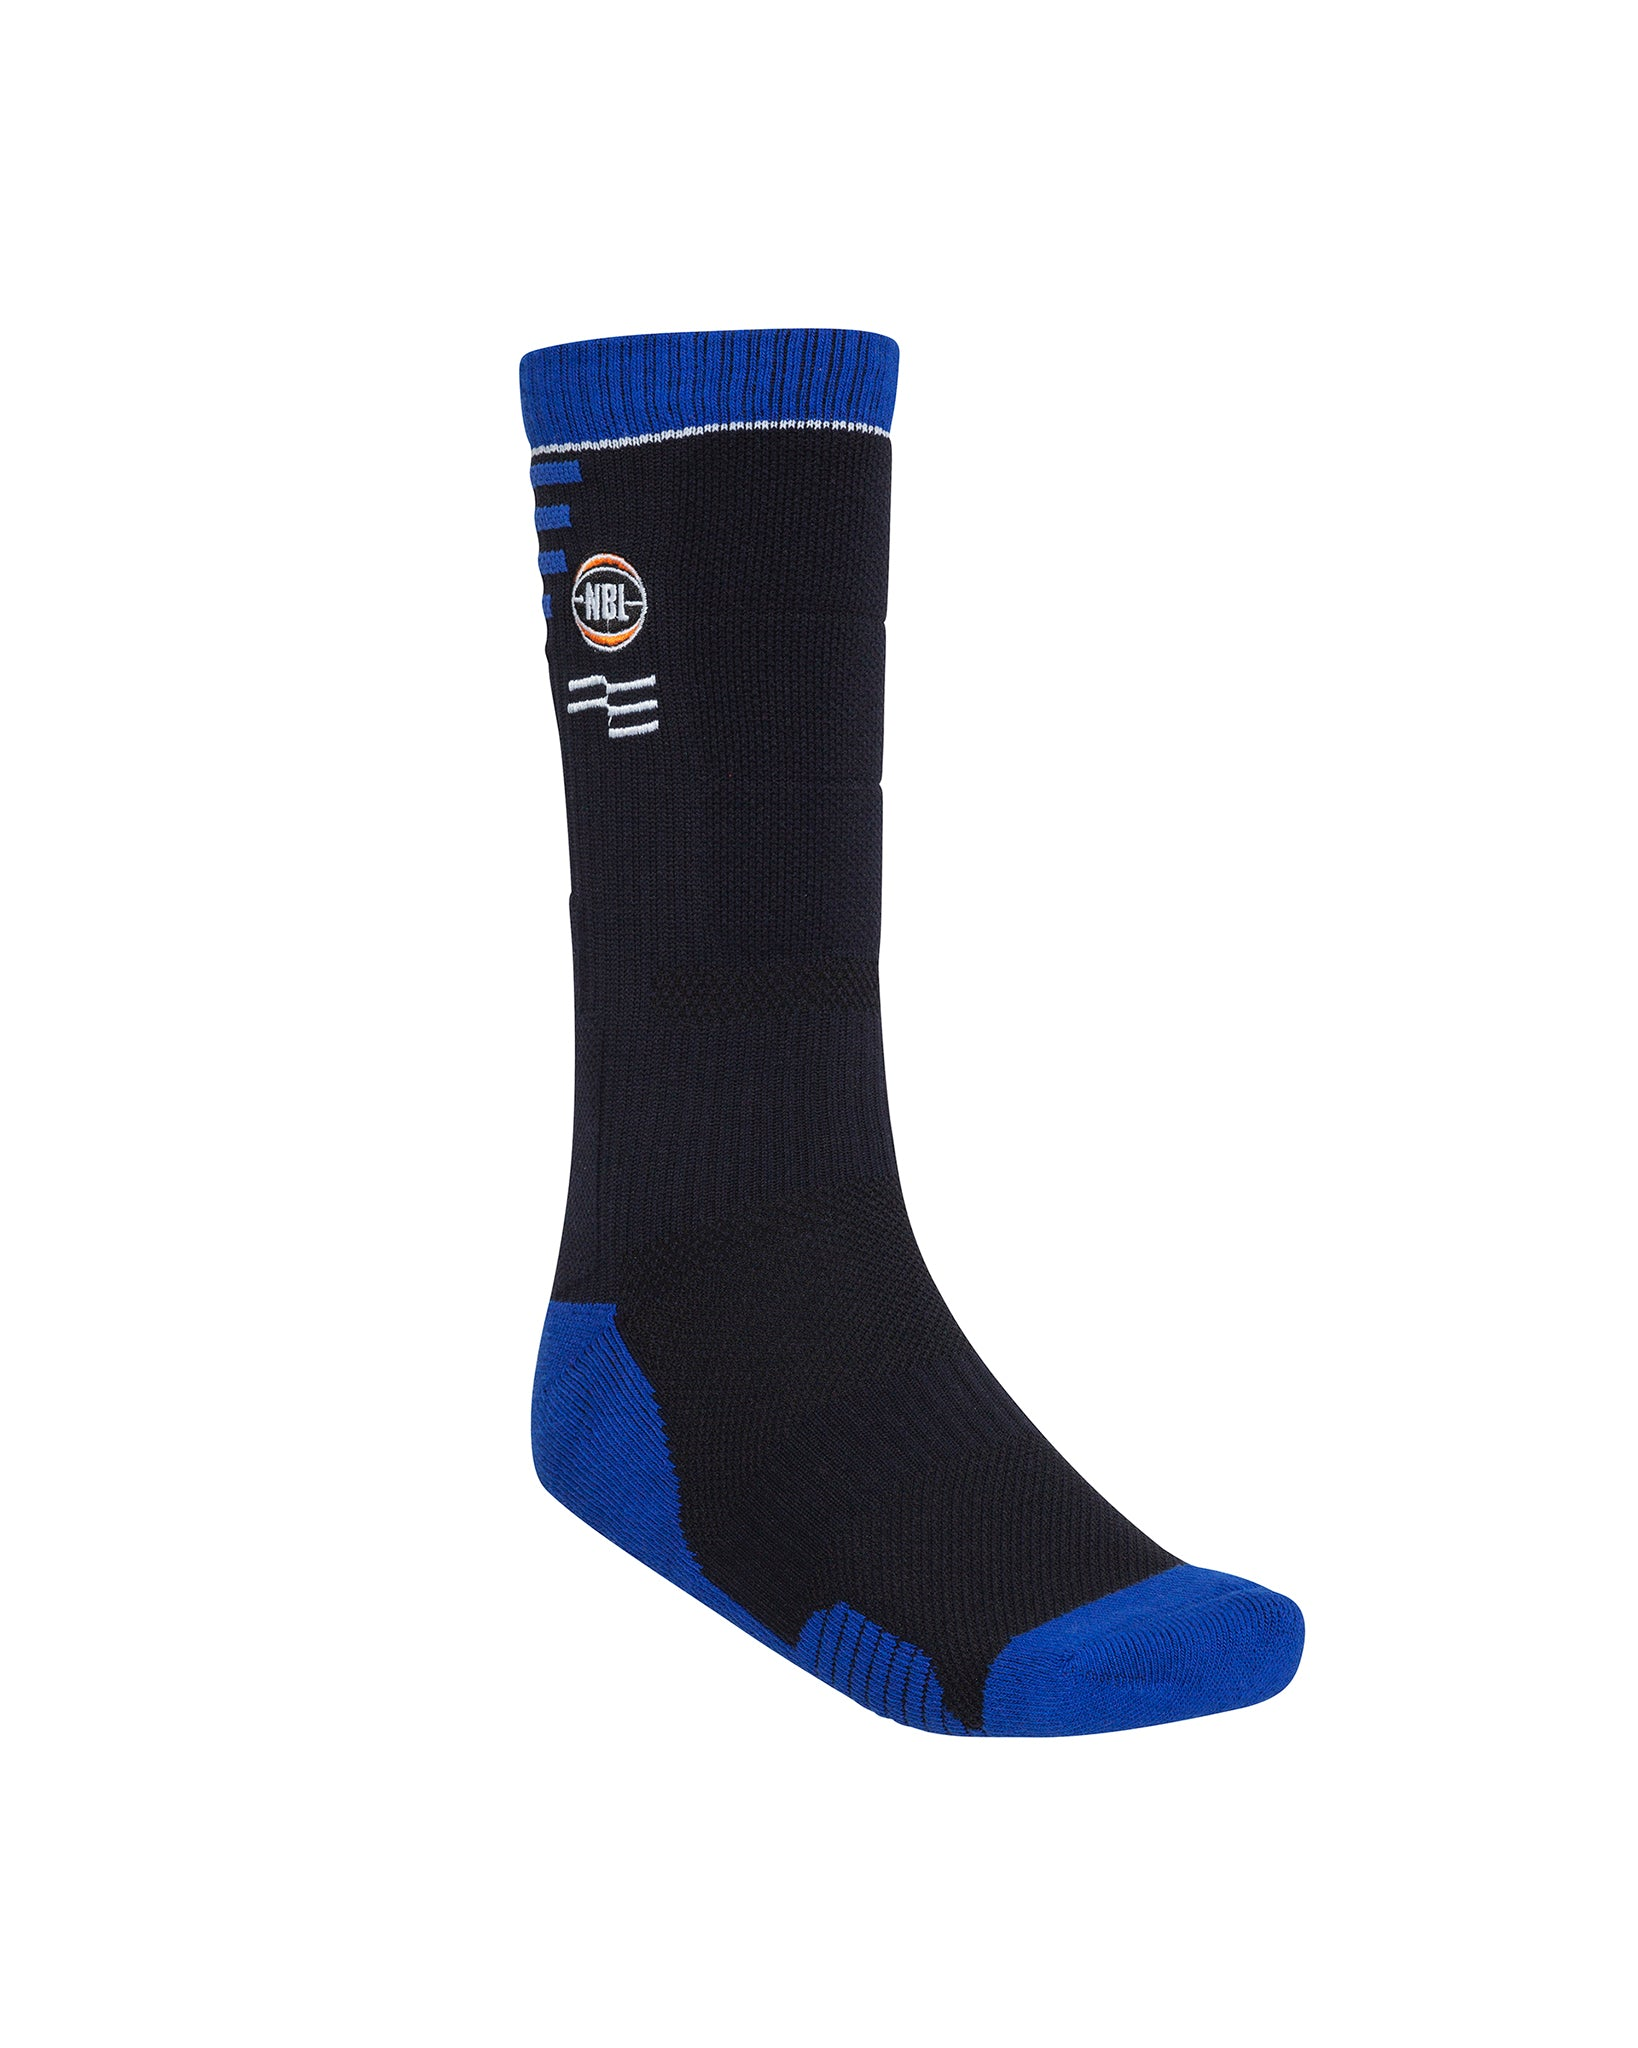 Melbourne United 19/20 Official NBL Home Socks